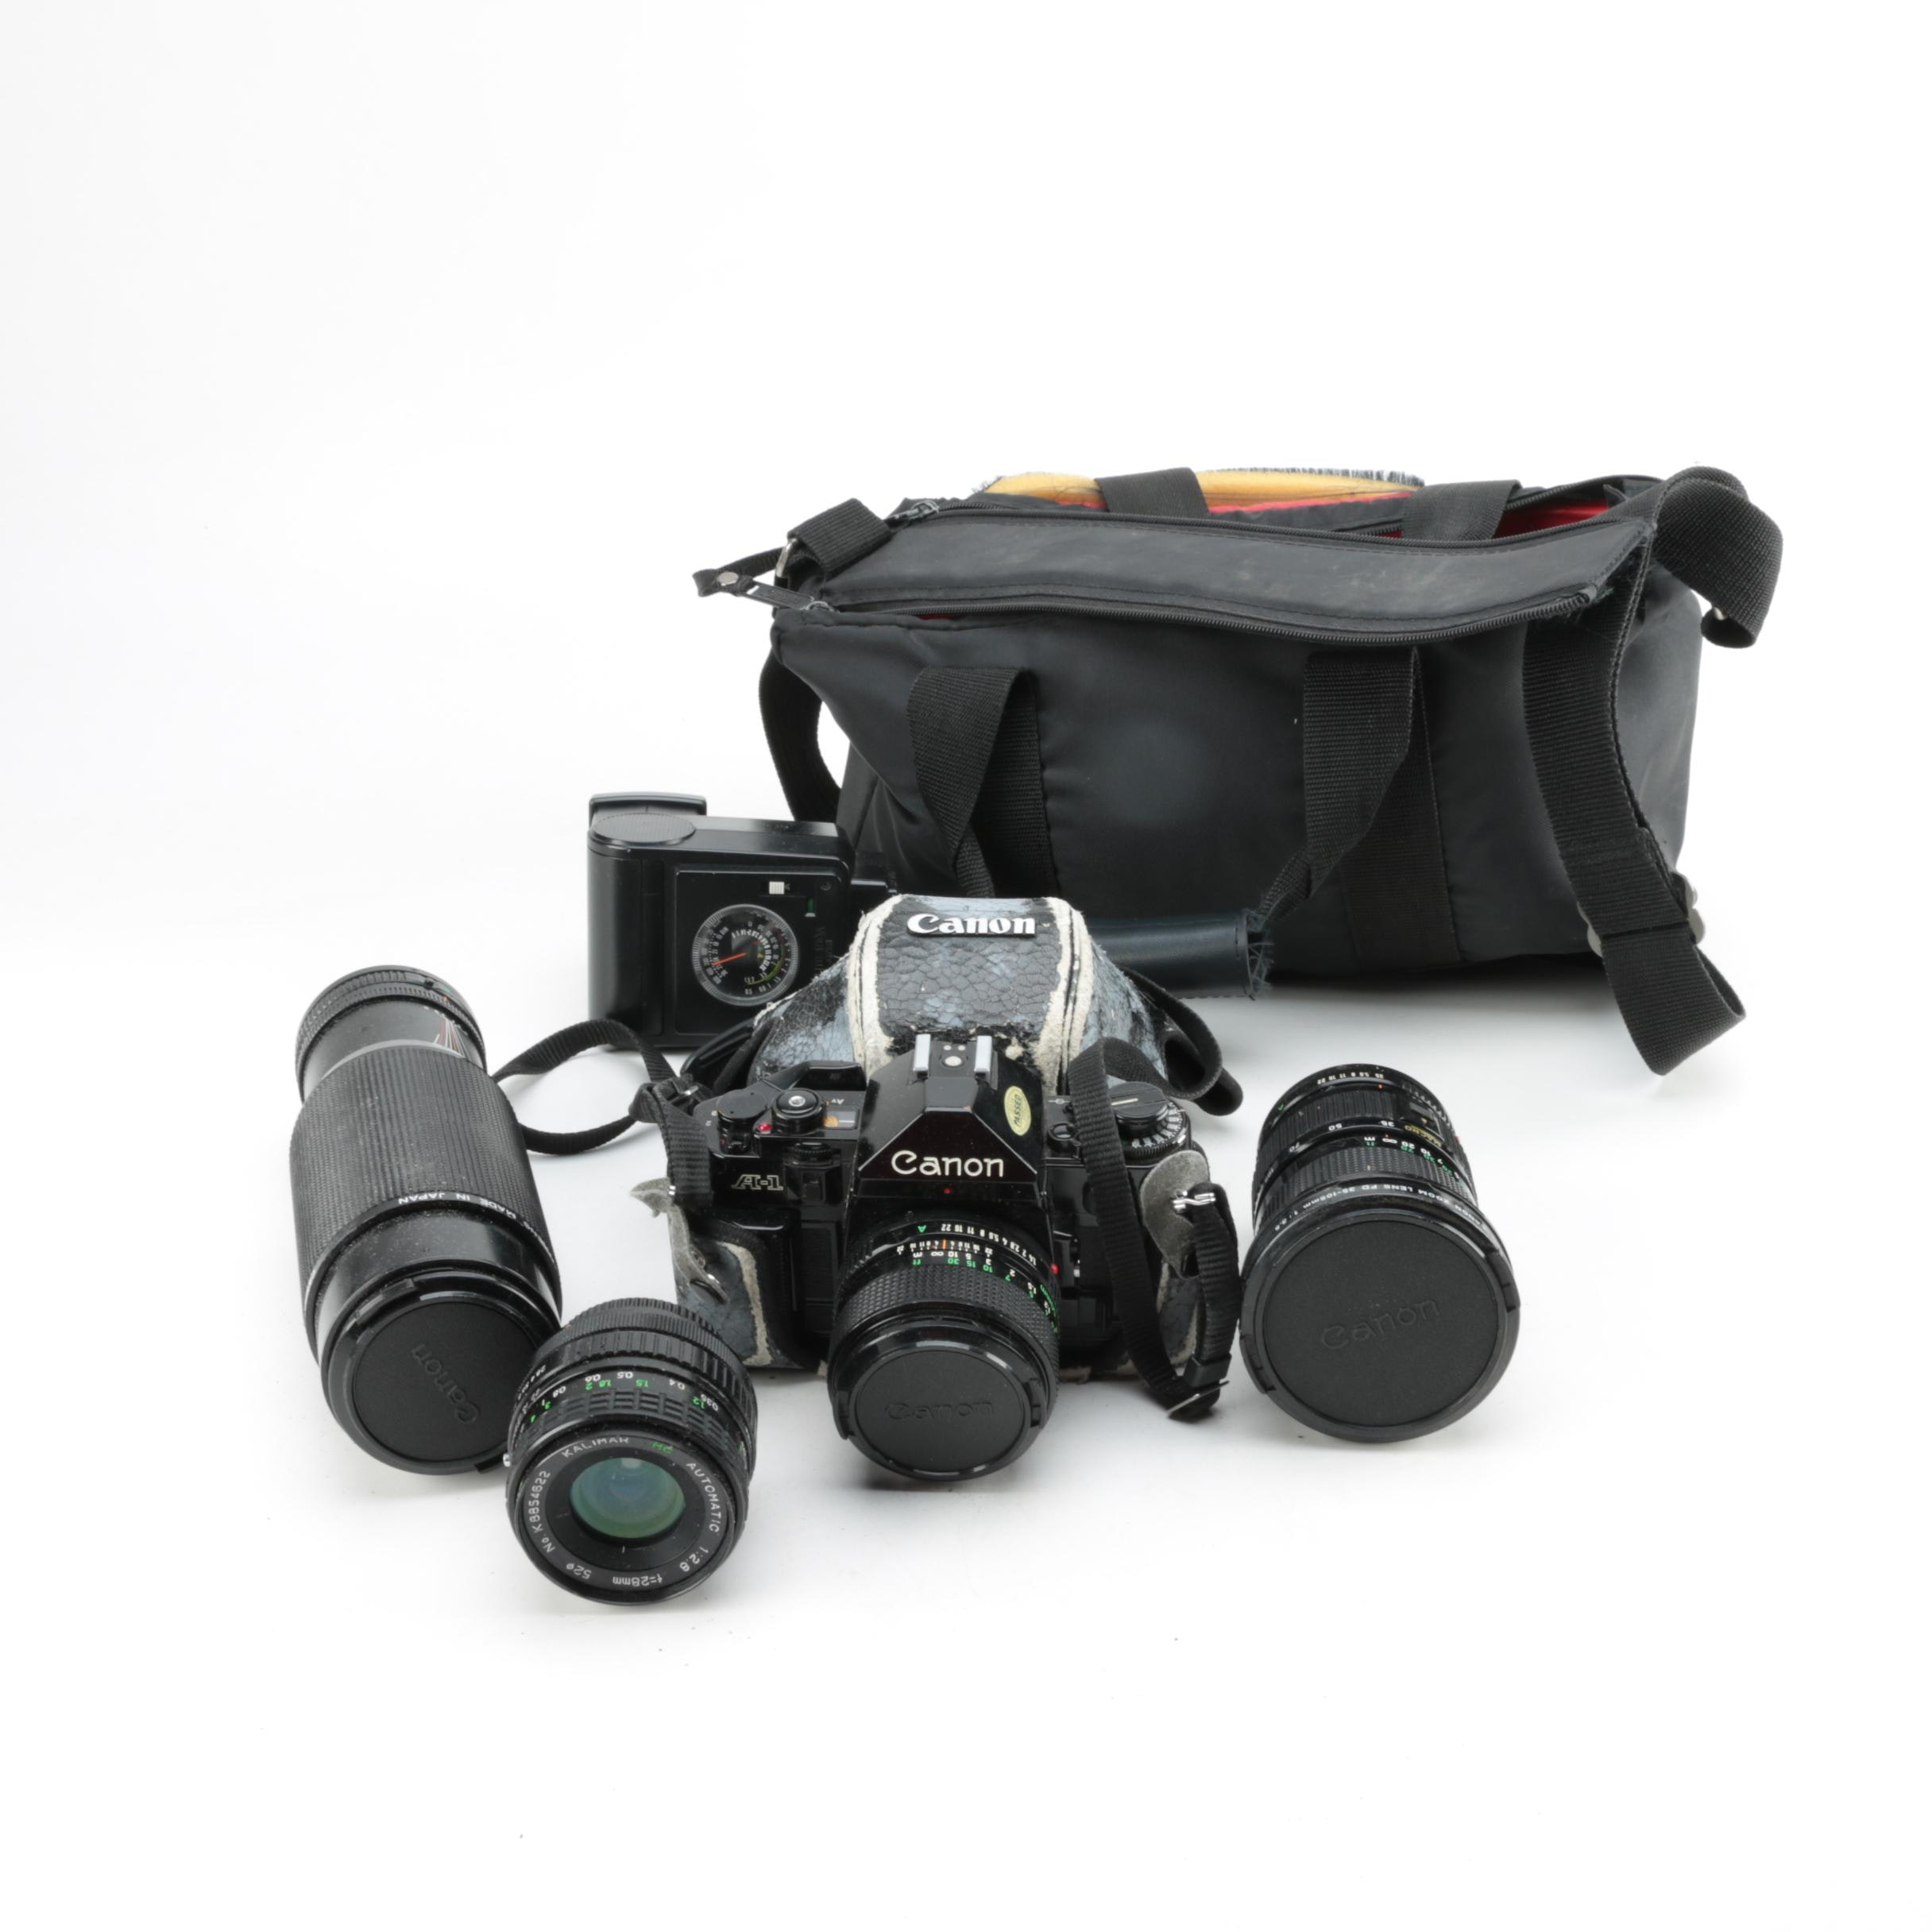 Canon A-1 Still Camera with Lenses, Accessories and Camera Bag